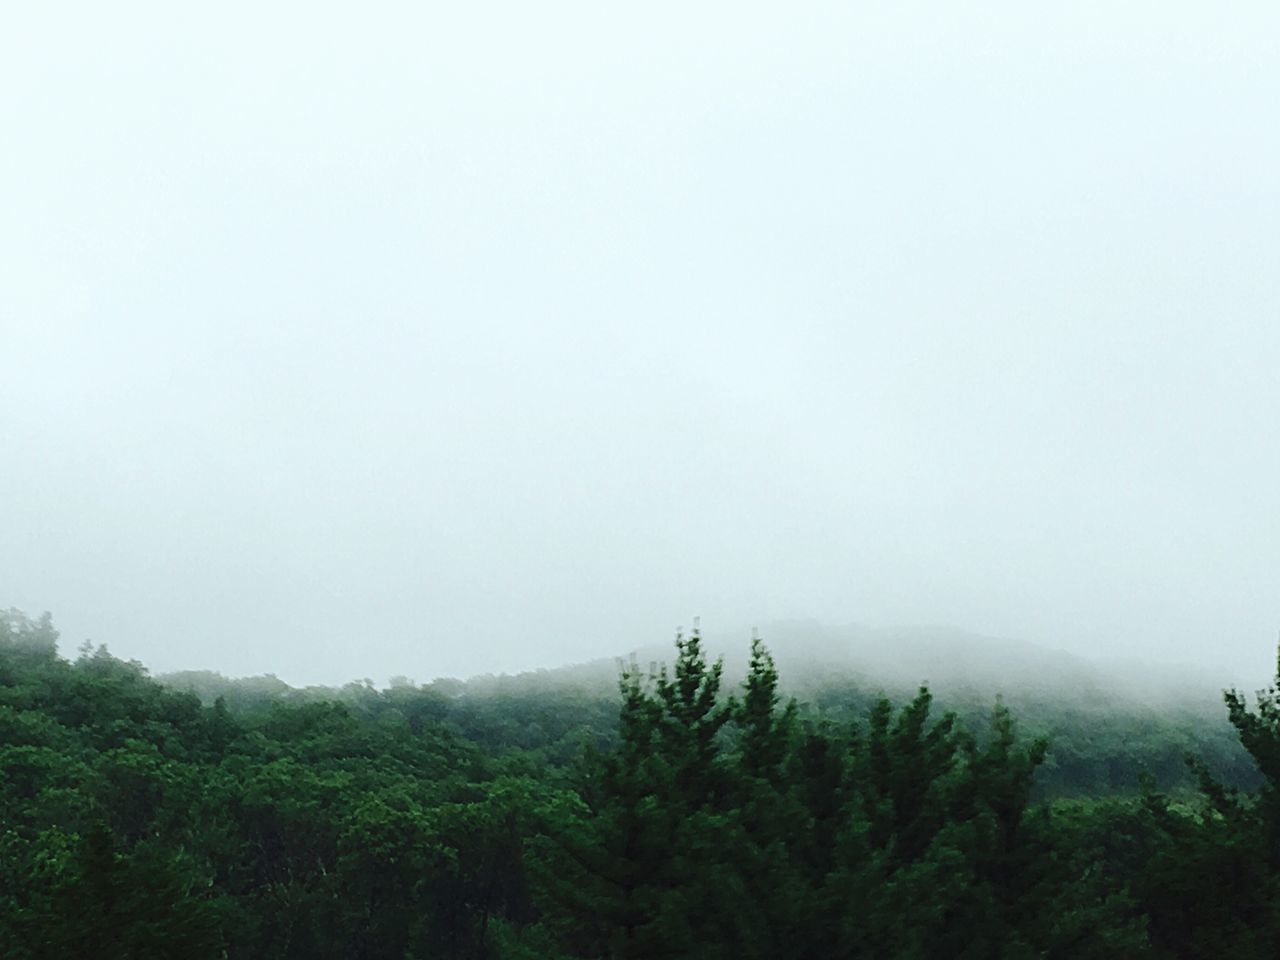 tree, nature, fog, tranquility, beauty in nature, tranquil scene, landscape, mist, copy space, no people, forest, scenics, growth, day, outdoors, hazy, mountain, sky